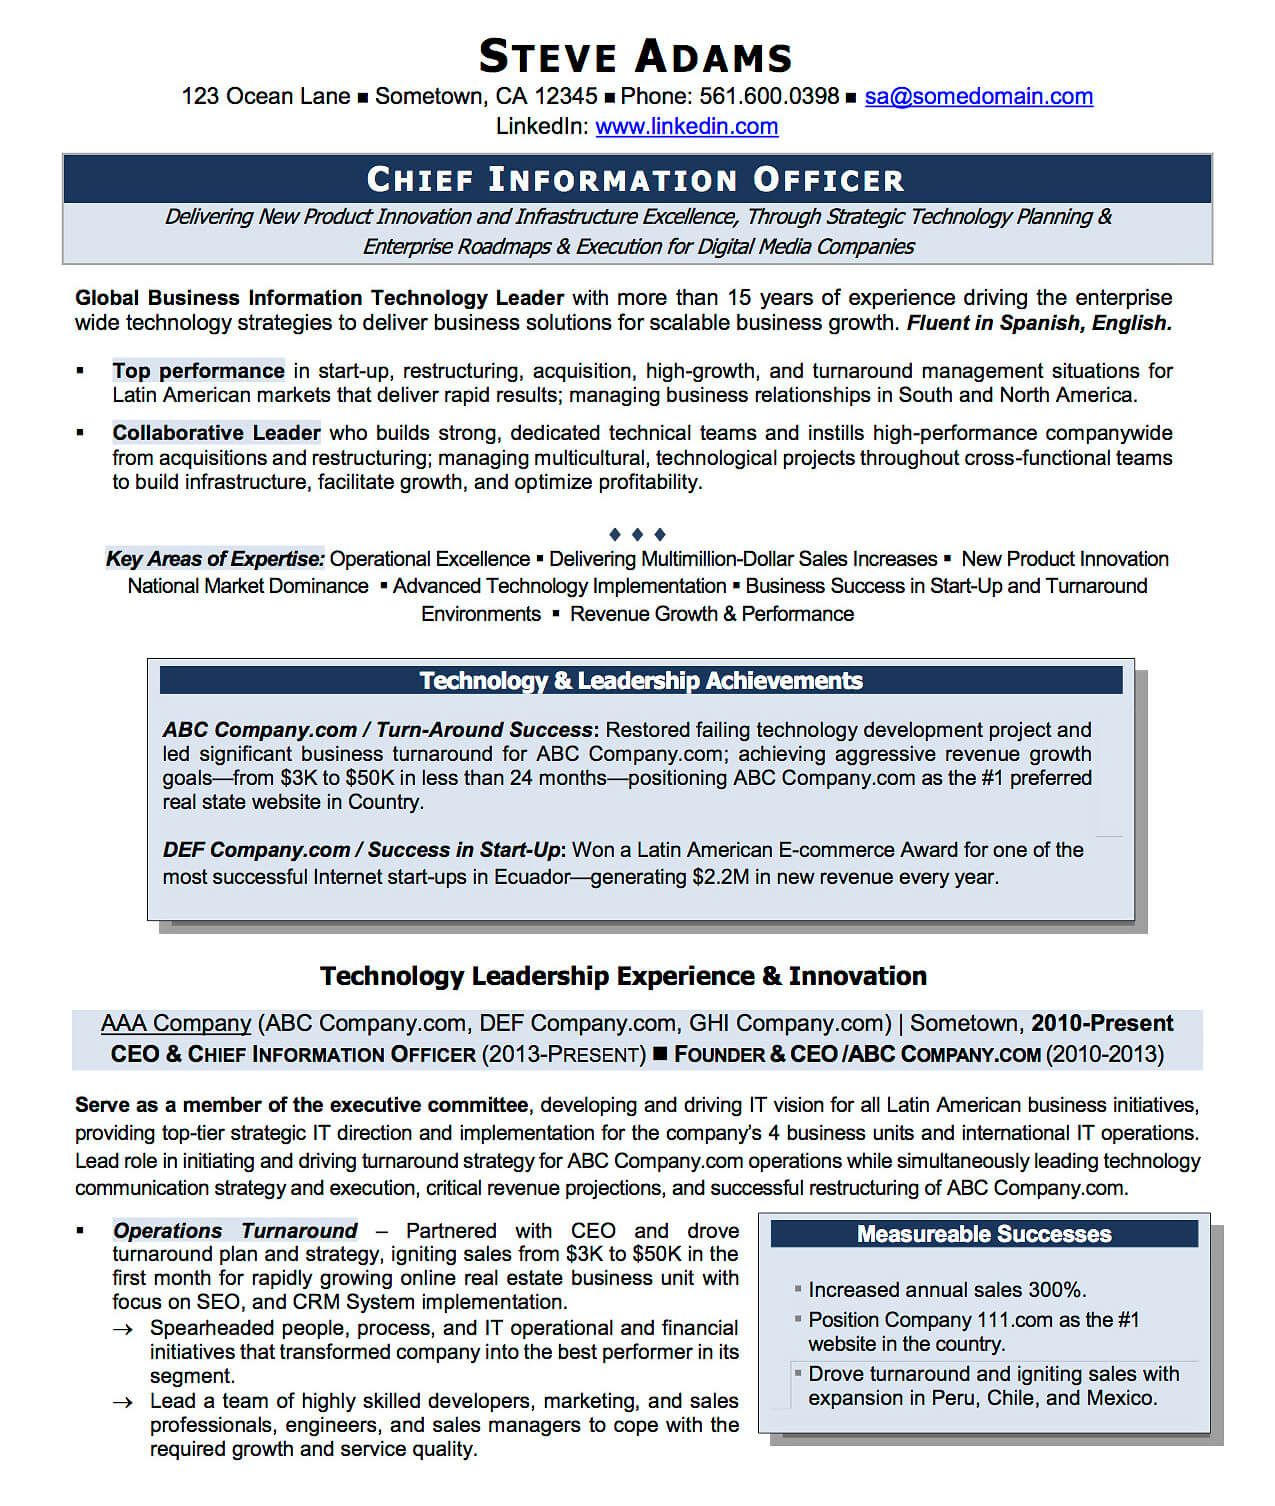 6 cio resume sample winning resume examples - Sample Cio Resume